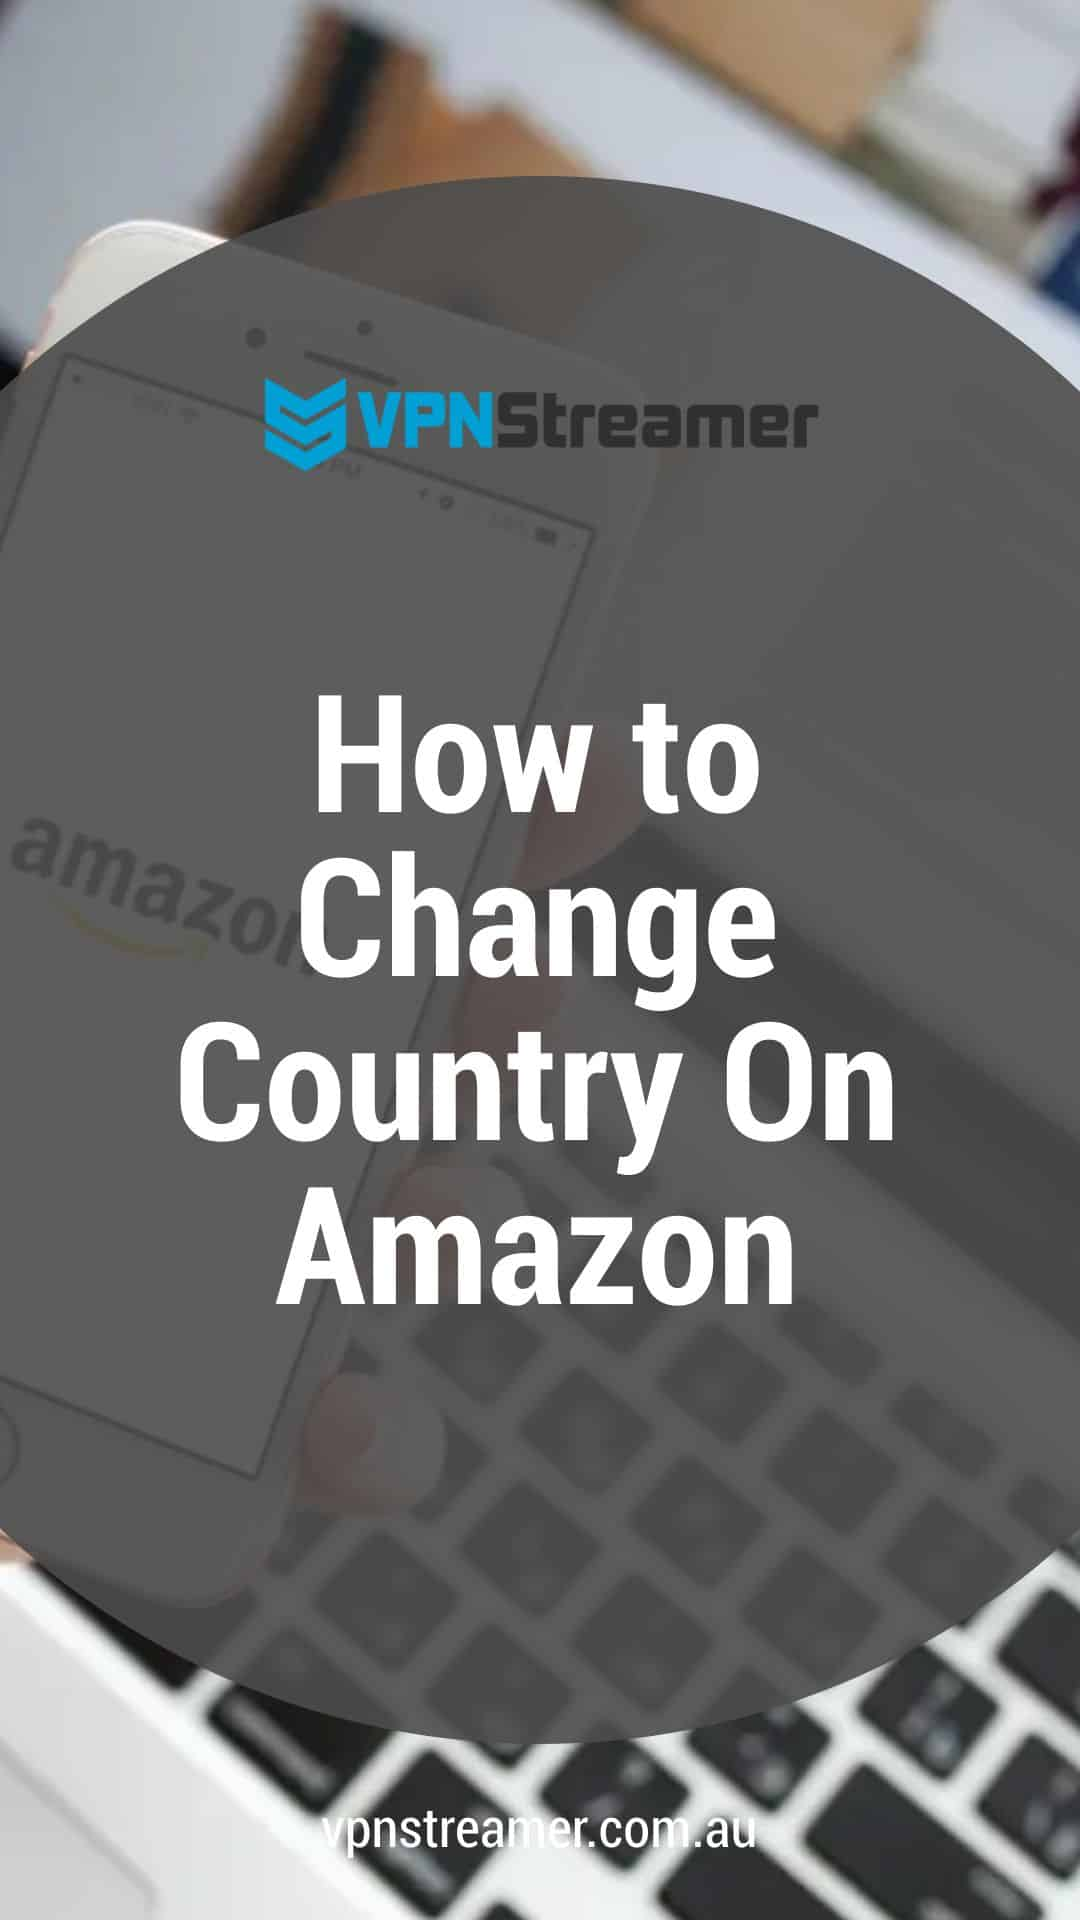 How to Change Country On Amazon